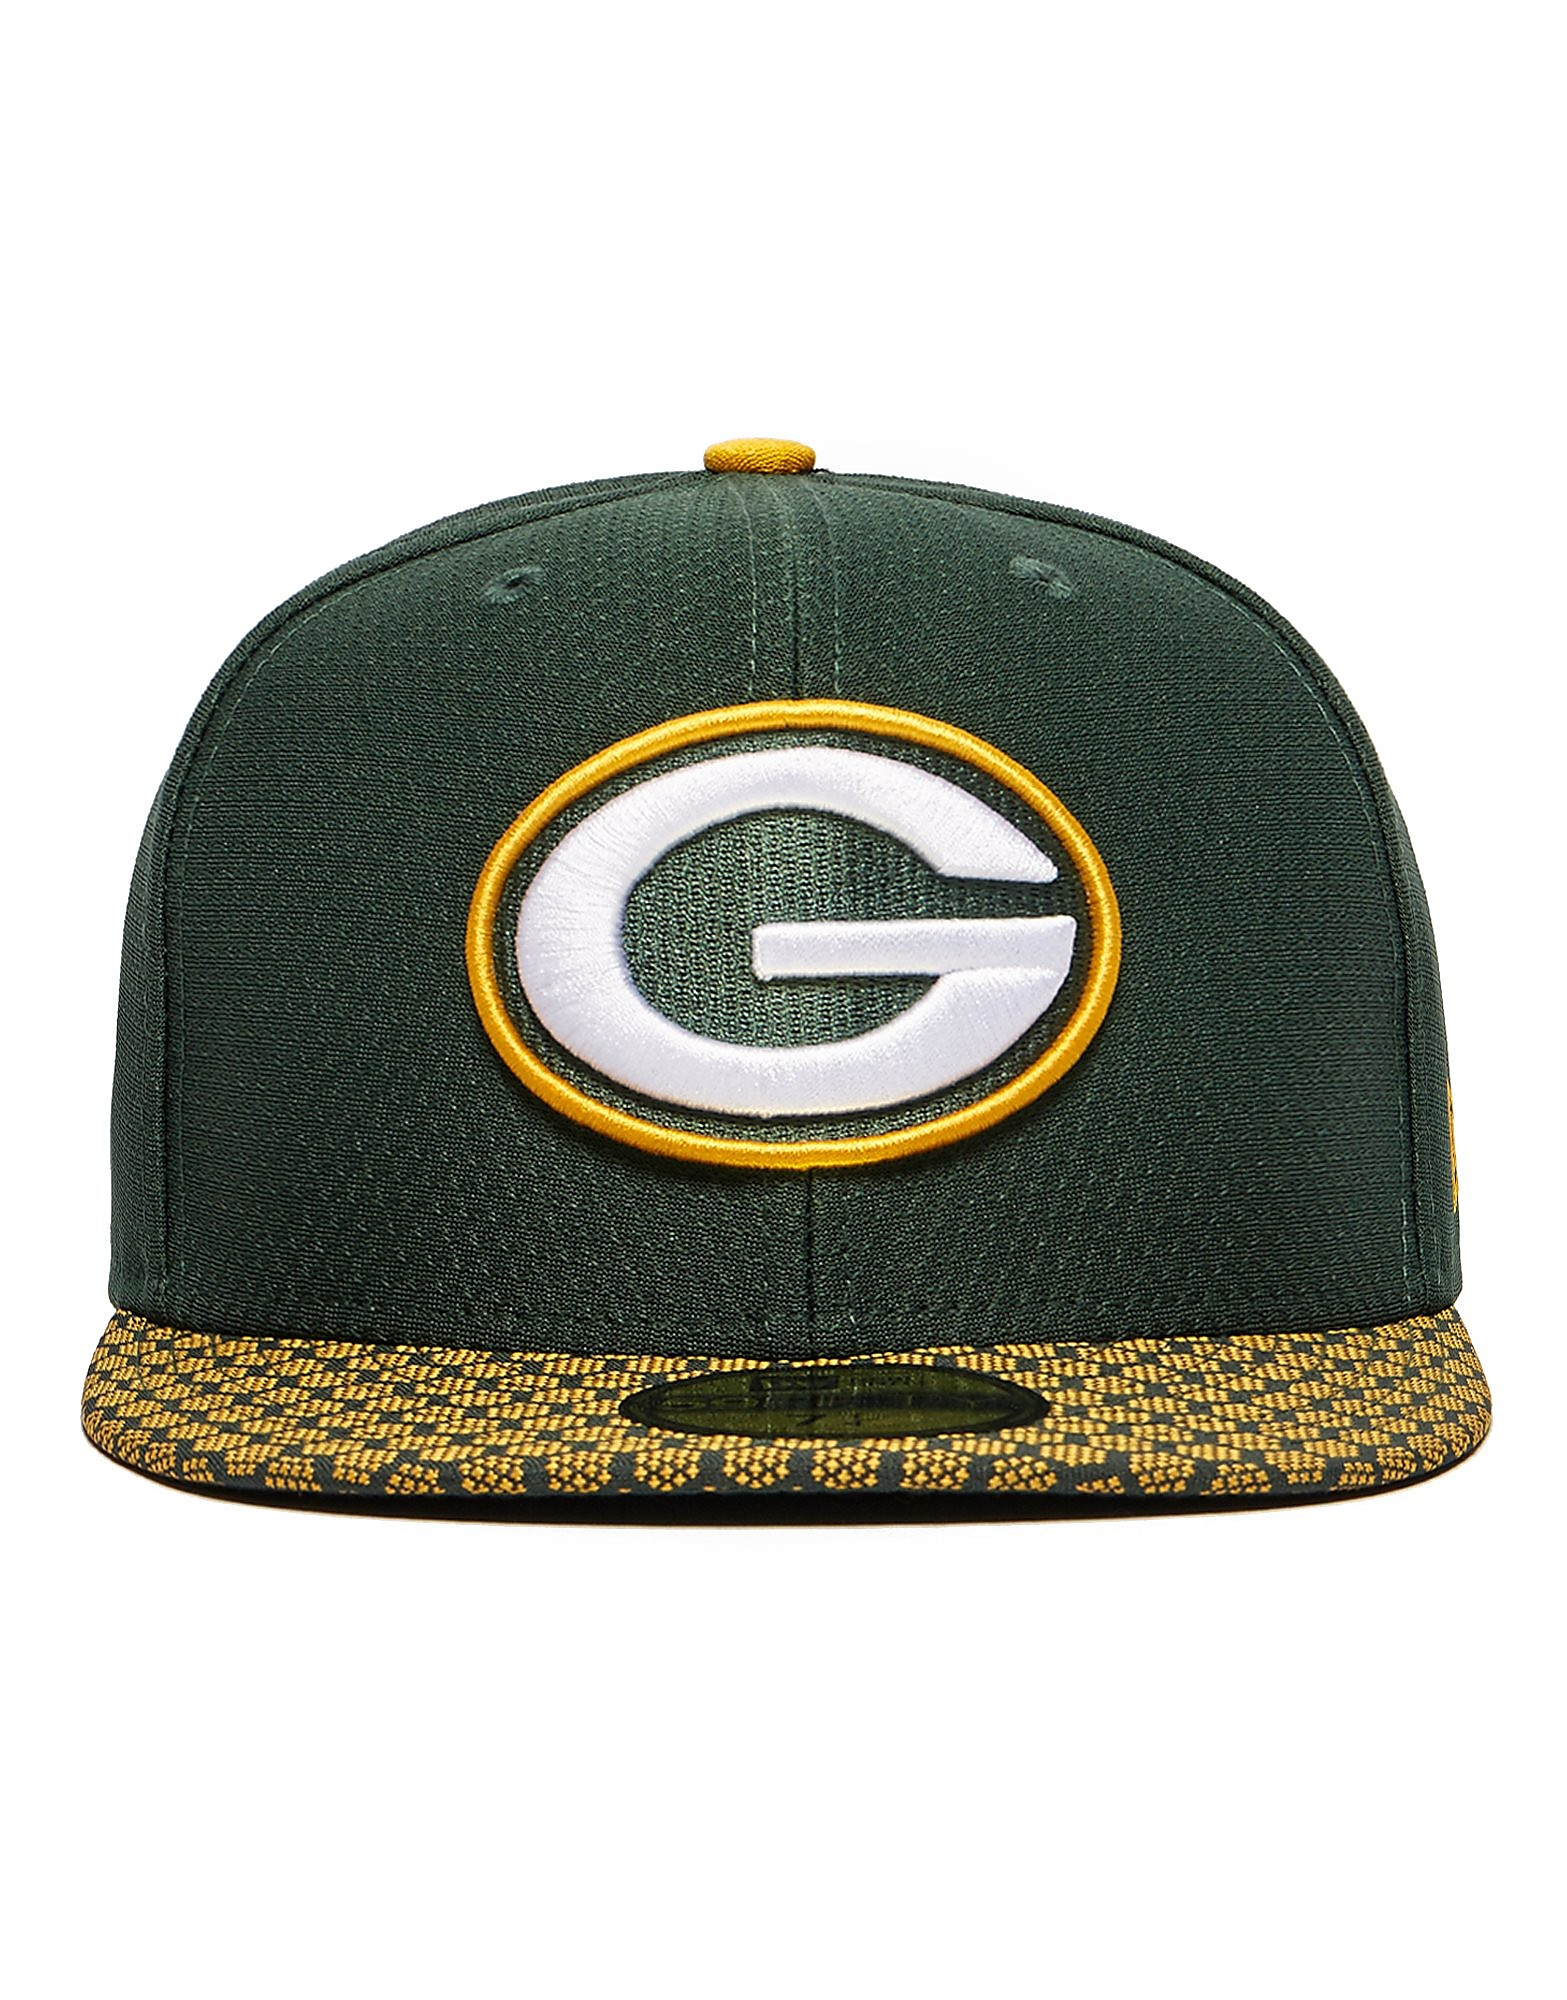 New Era gorra Green Bay Packers 59Fifty